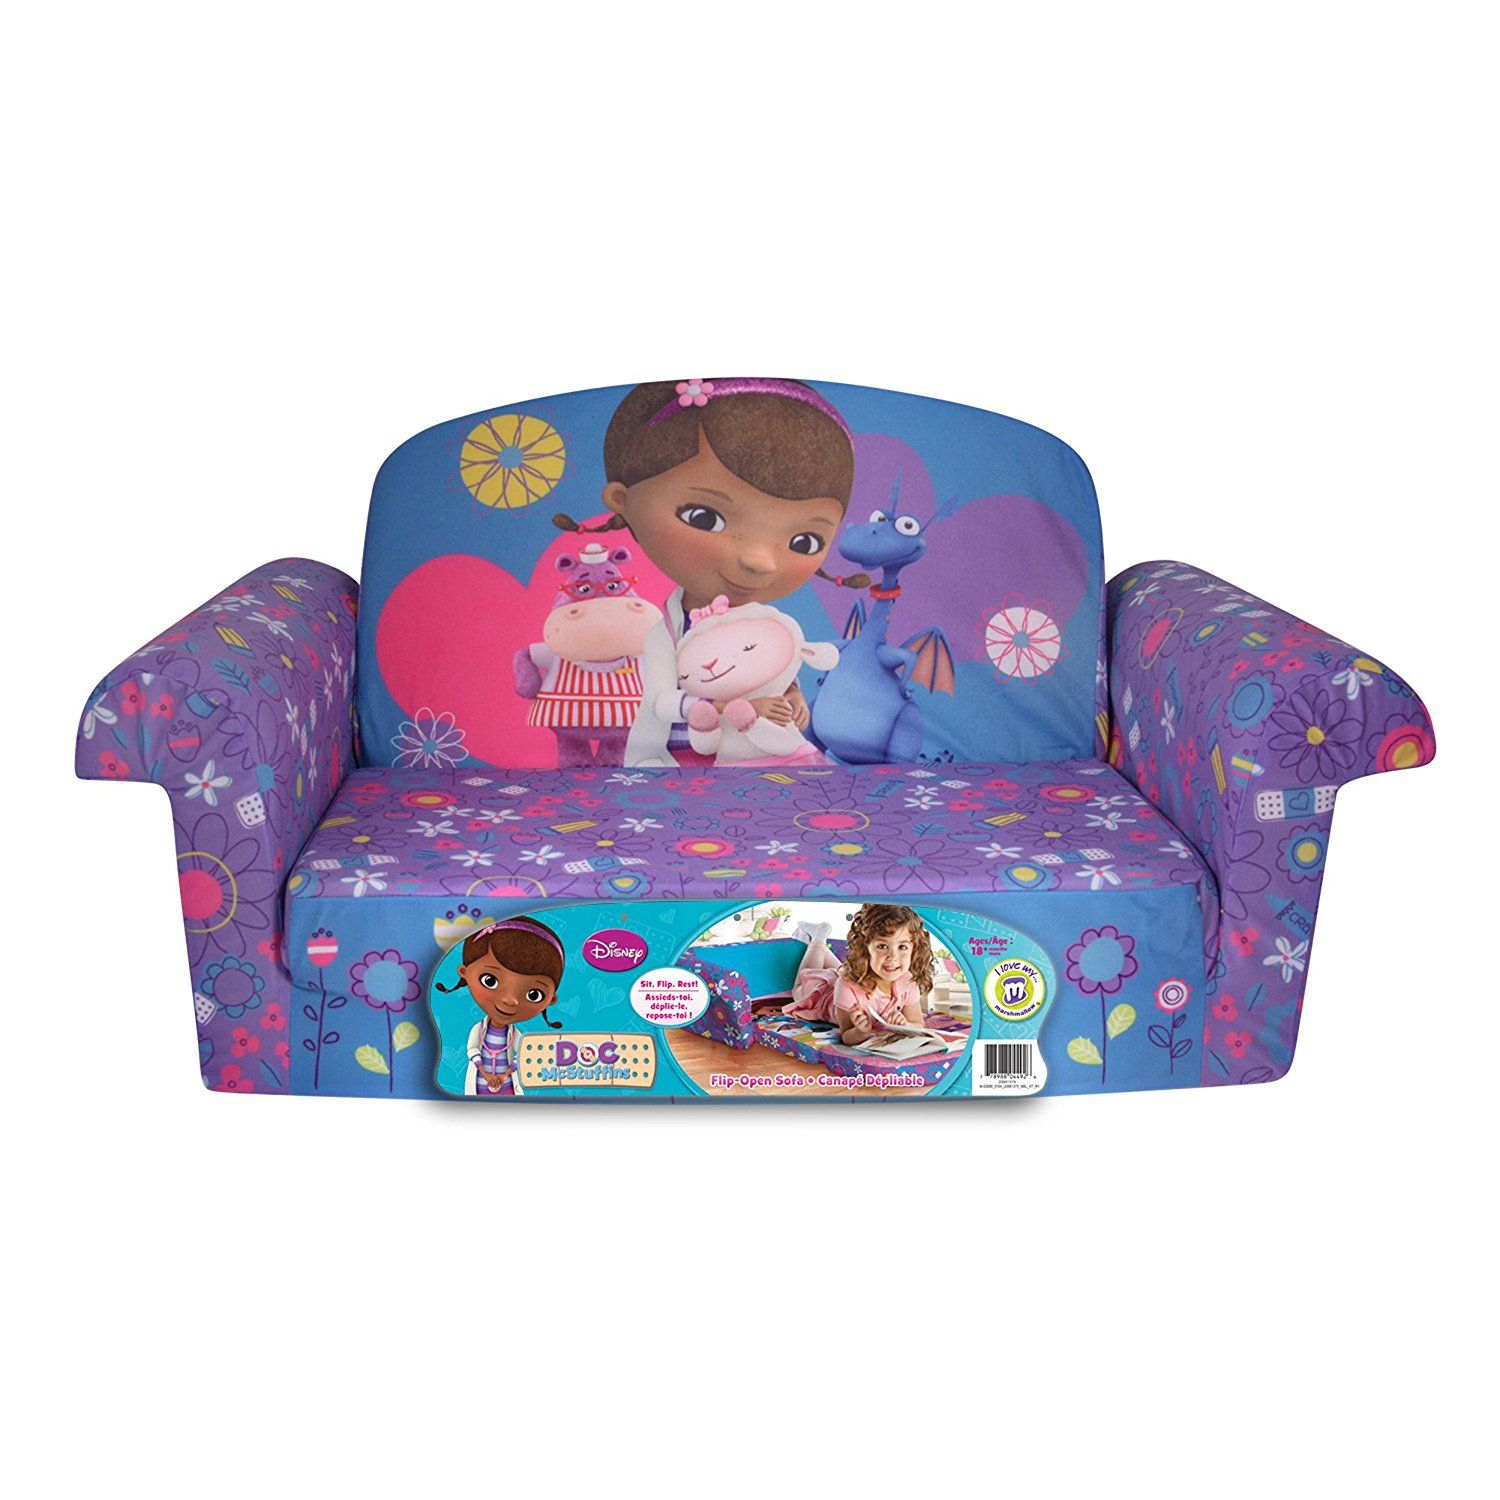 Toddler Fold Out Sofa Pgp 4 Kids Childrens Sofa Bed Fold Out Sofa